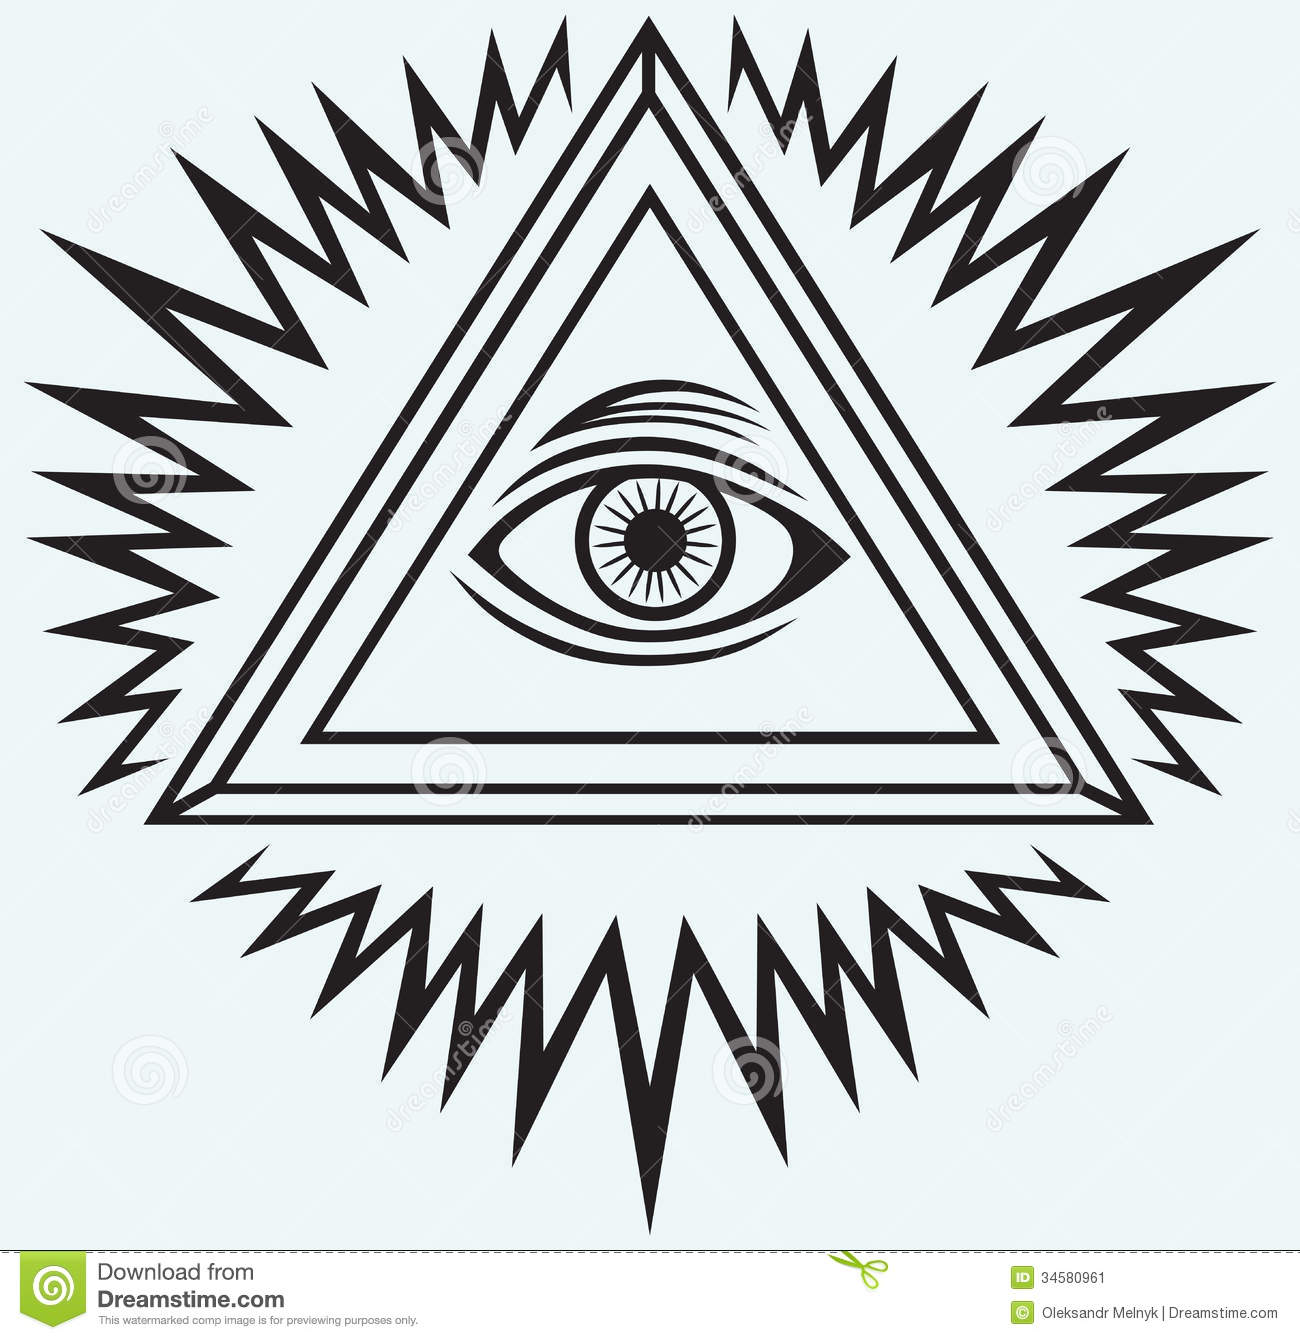 Illuminati clipart #14, Download drawings